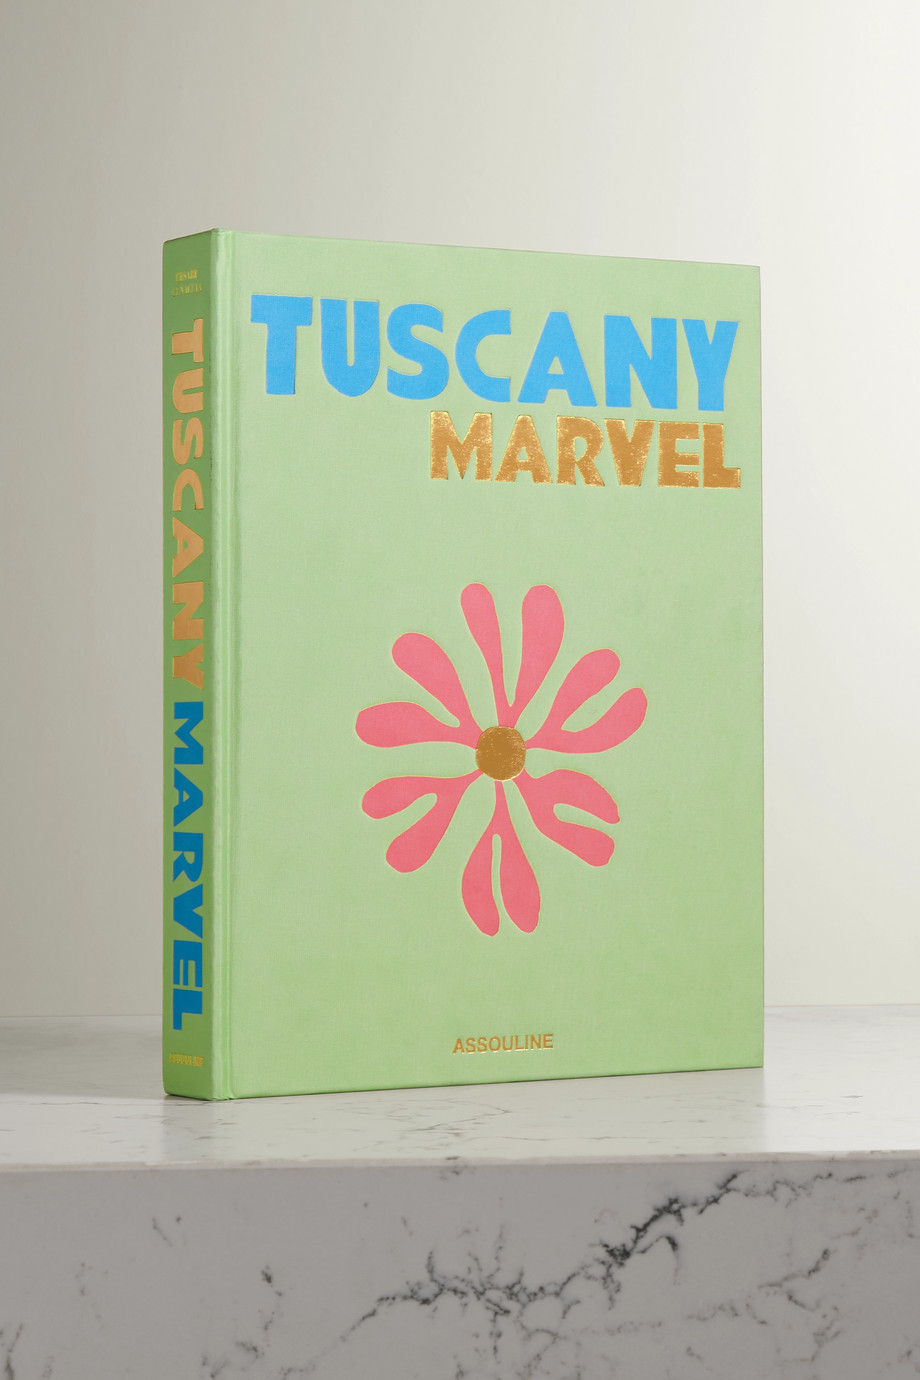 Assouline Tuscany Marvel by Cesare Cunaccia hardcover book